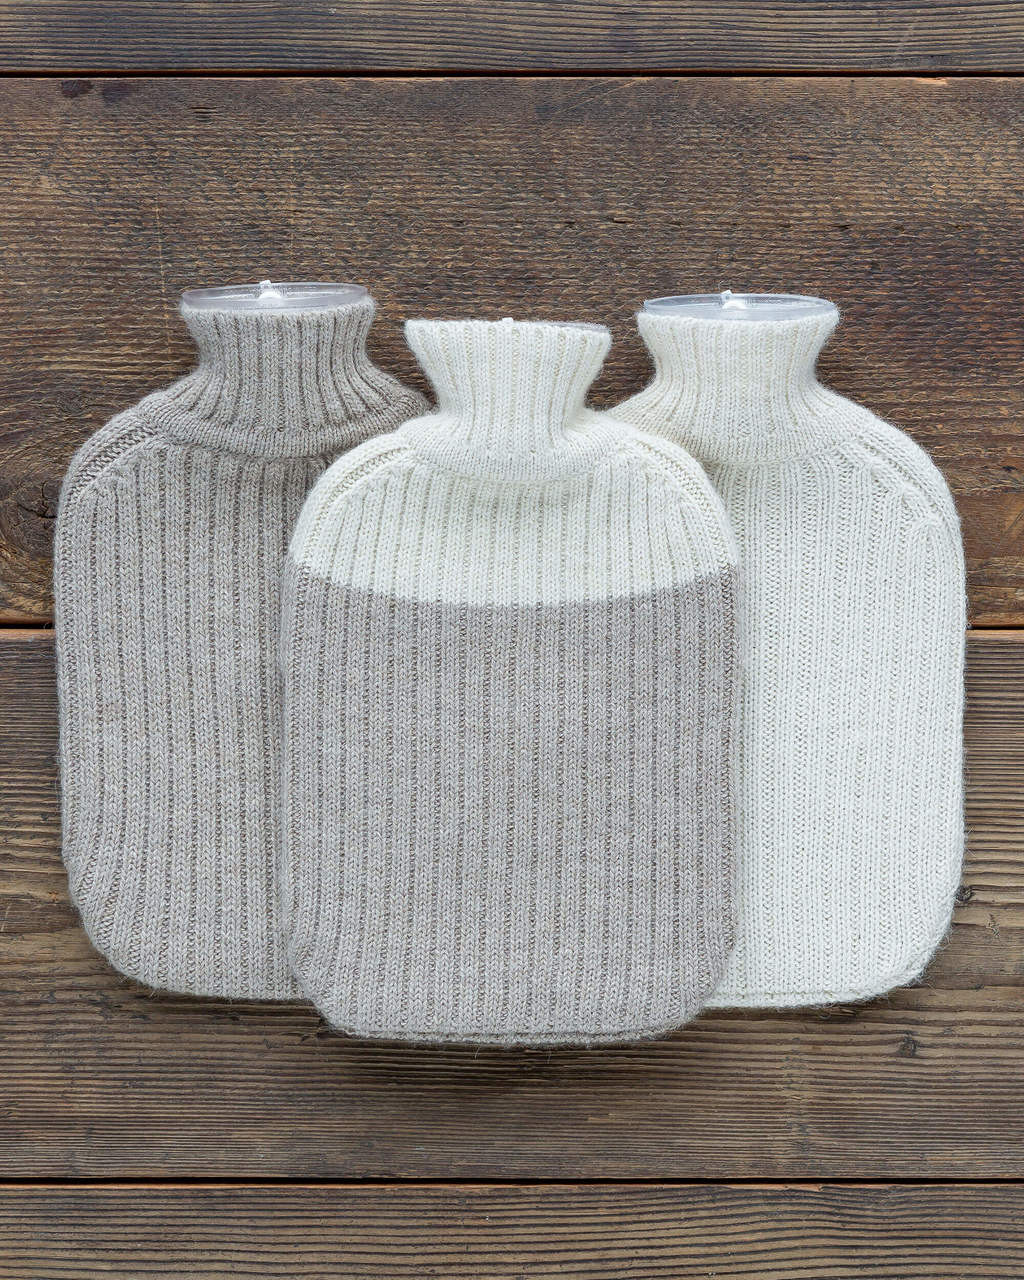 Alicia Adams Alpaca Hot Water Bottle, alpaca gift items, alpaca hot water bottle cover, fair trade made in peru, neutral color alpaca hot water bottle